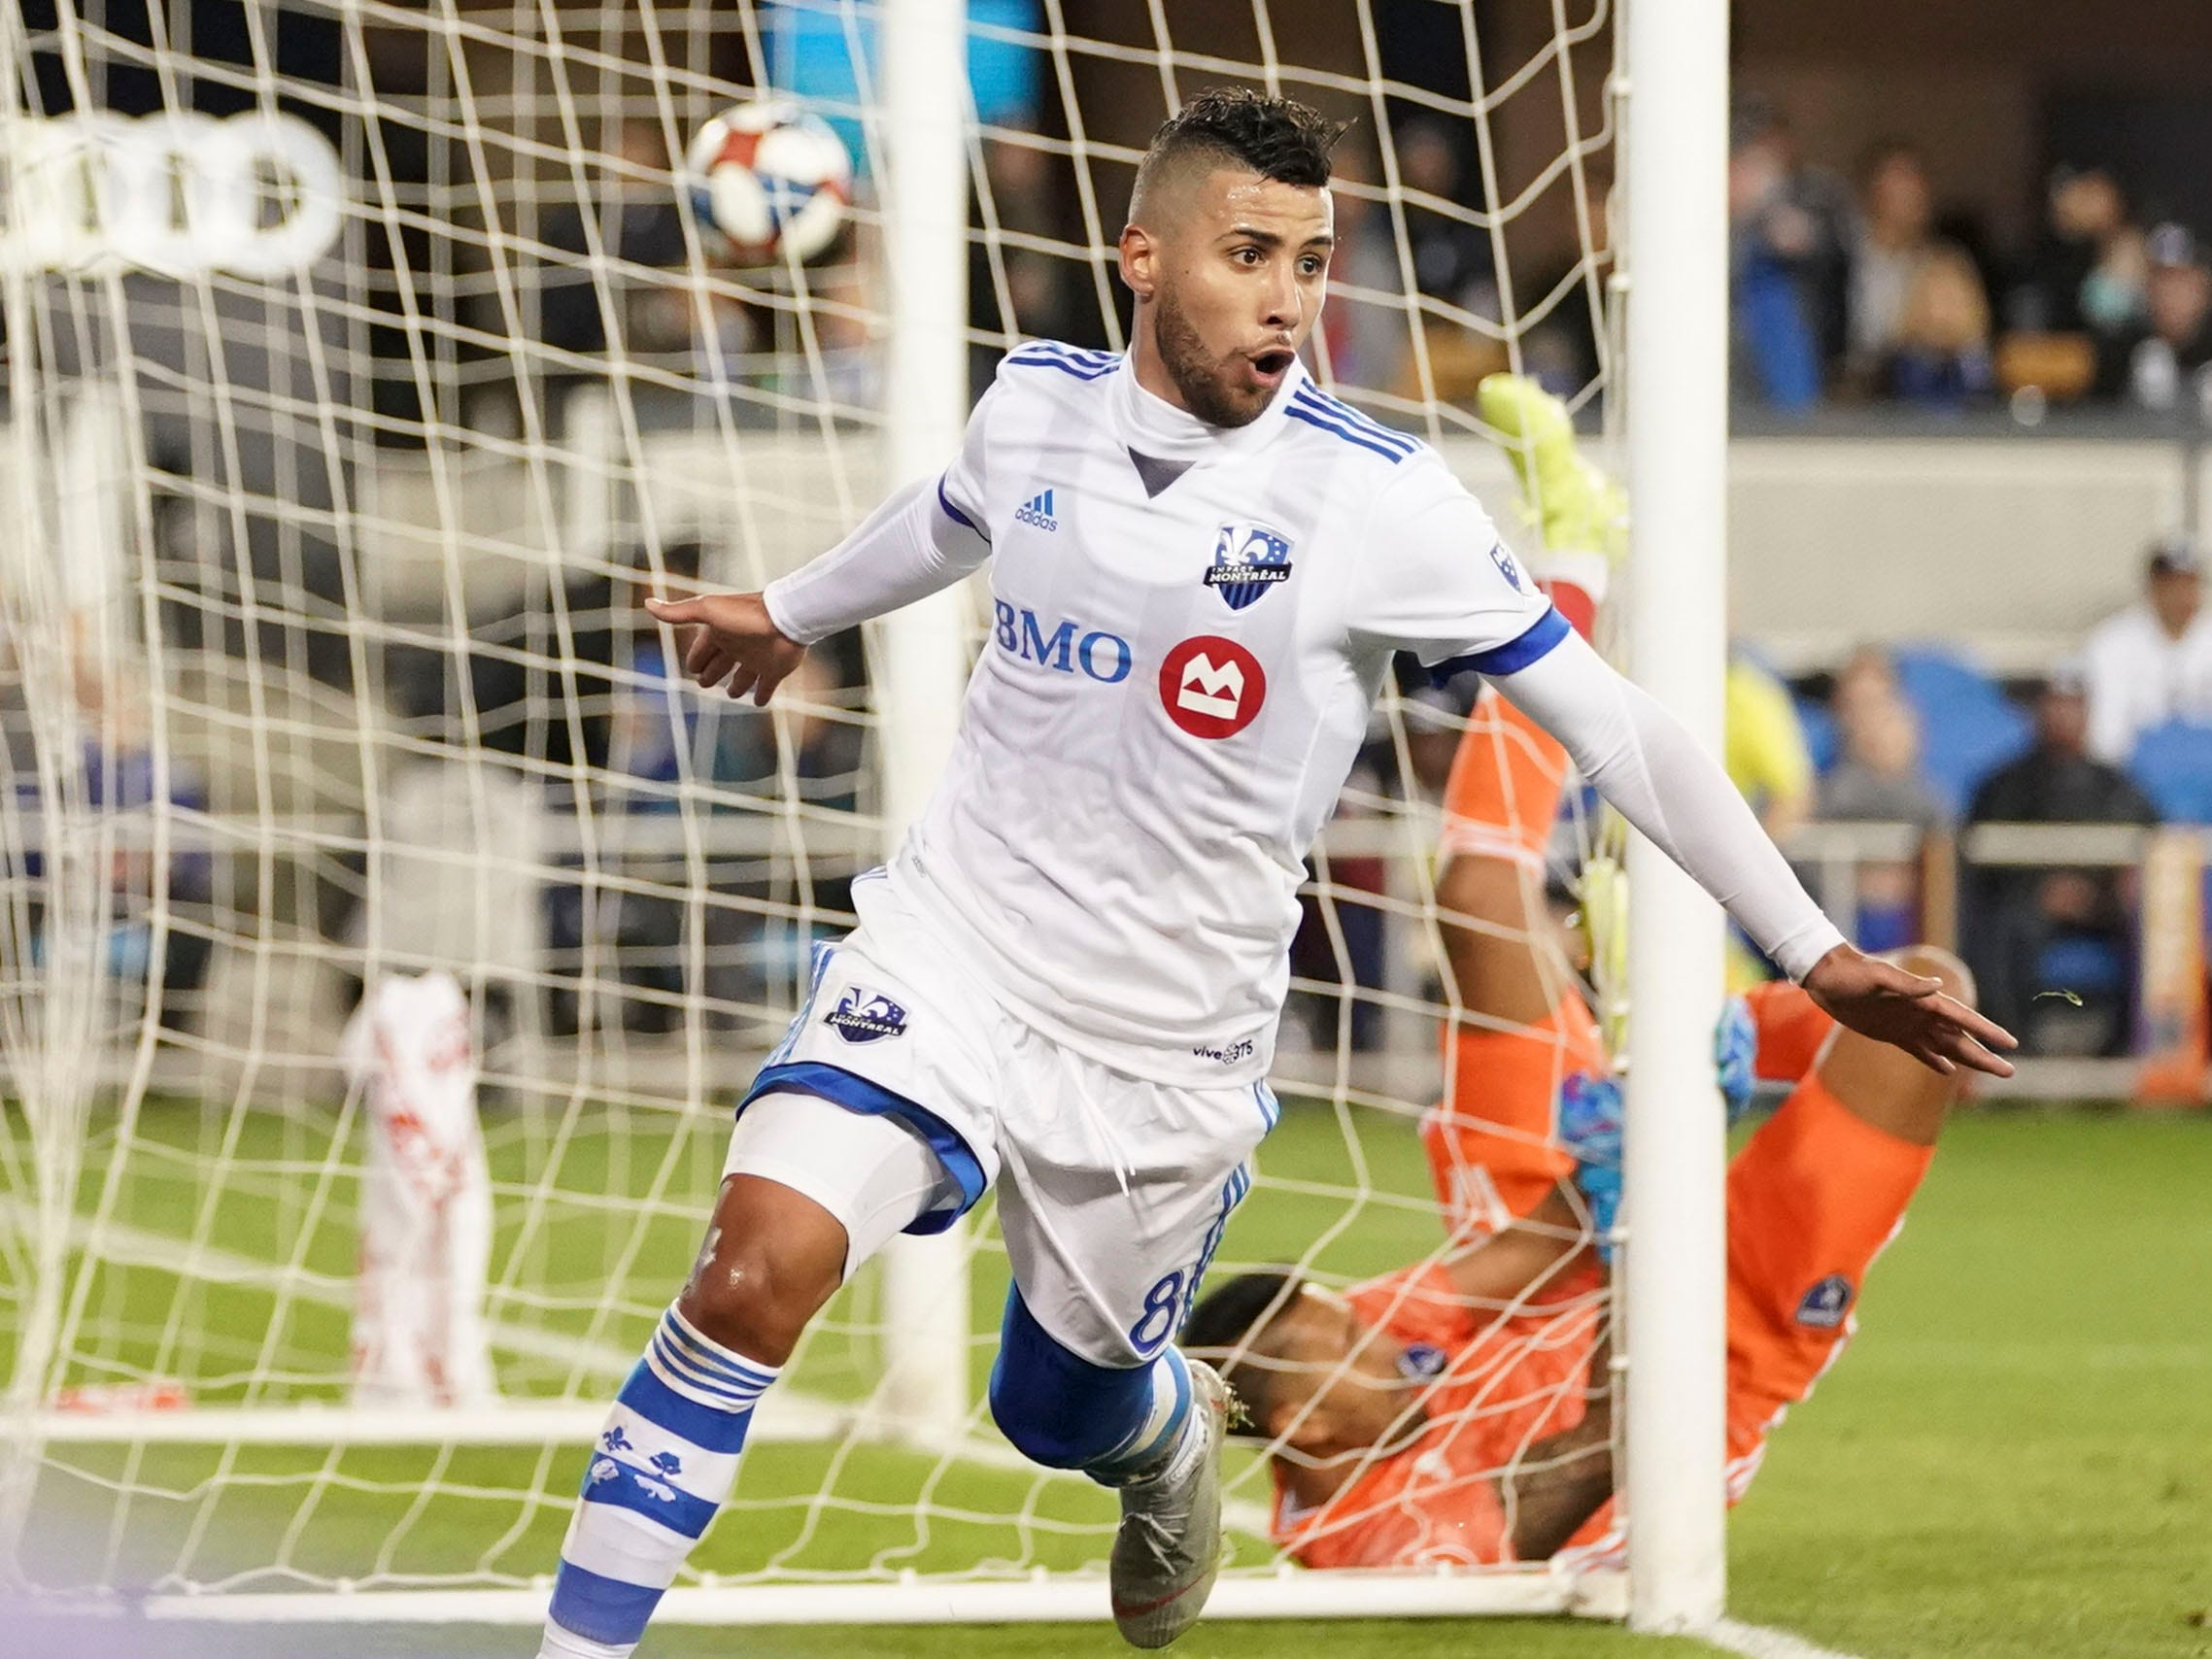 Montreal Impact midfielder Saphir Taider celebrates after scoring a goal past San Jose Earthquakes goalkeeper Daniel Vega during the first half at Avaya Stadium. Montreal won the game, 2-1.